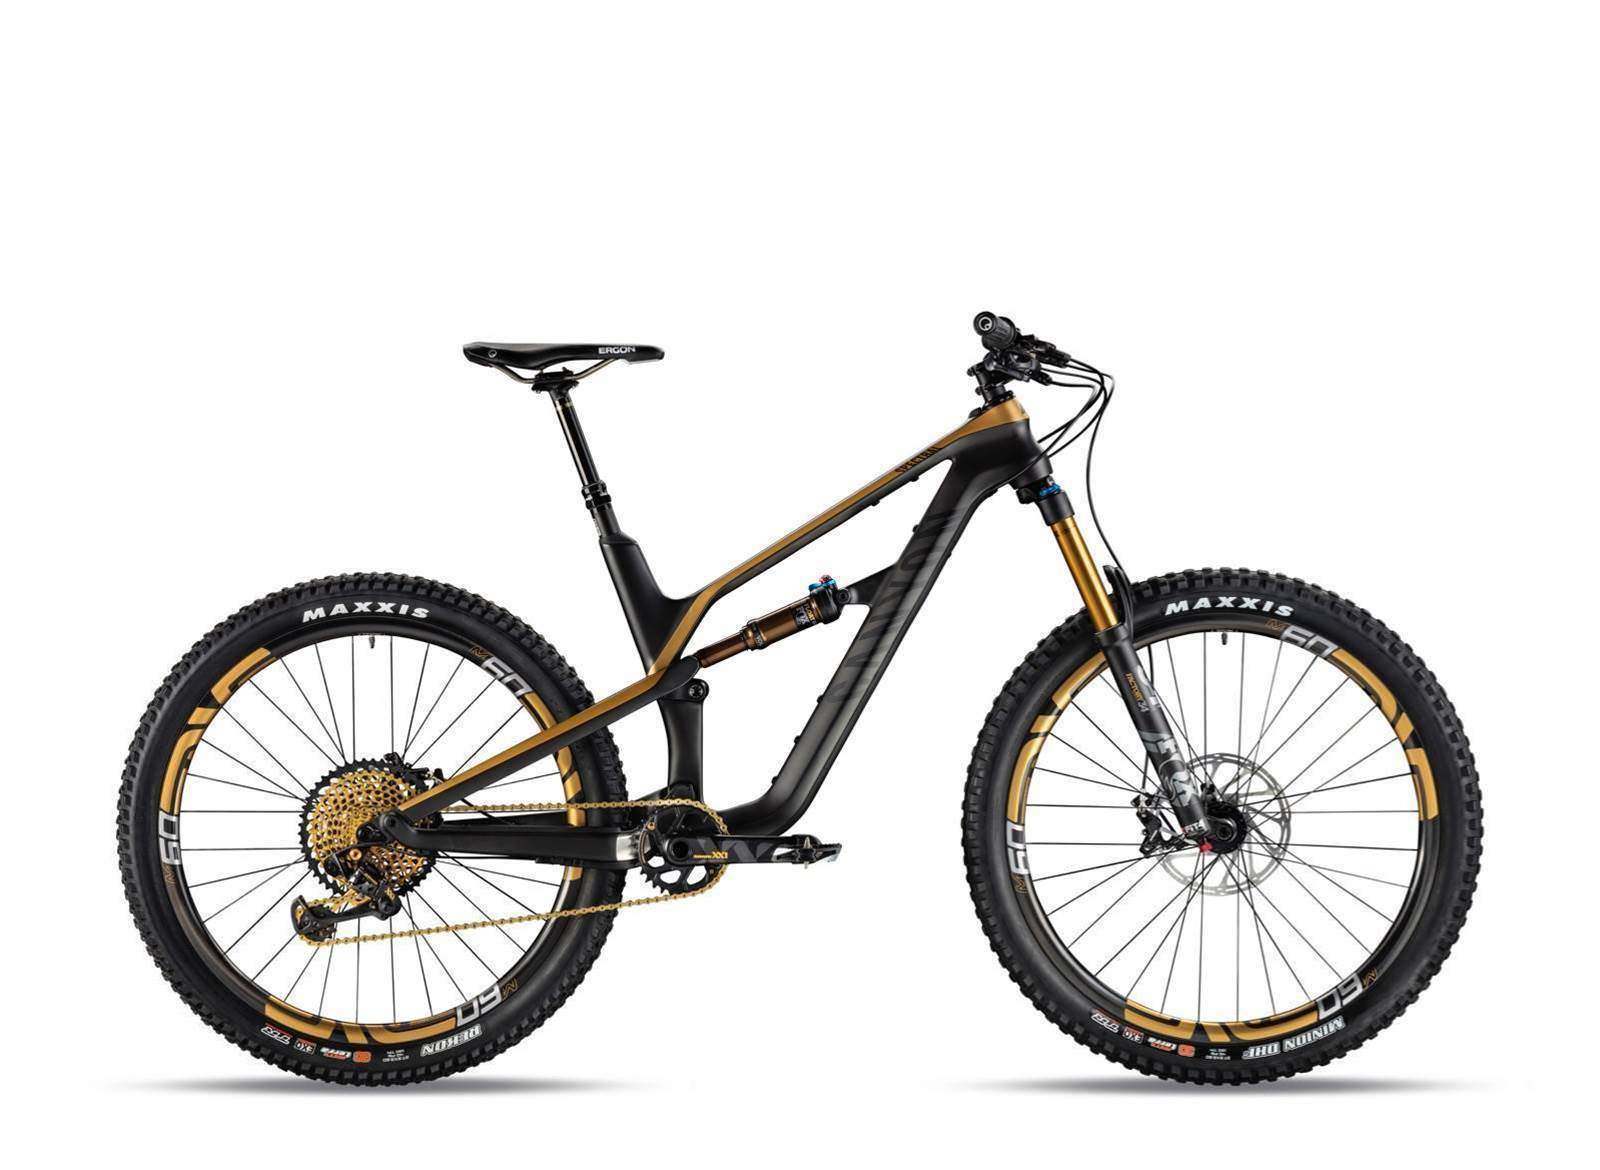 Canyon launch an all-new Spectral